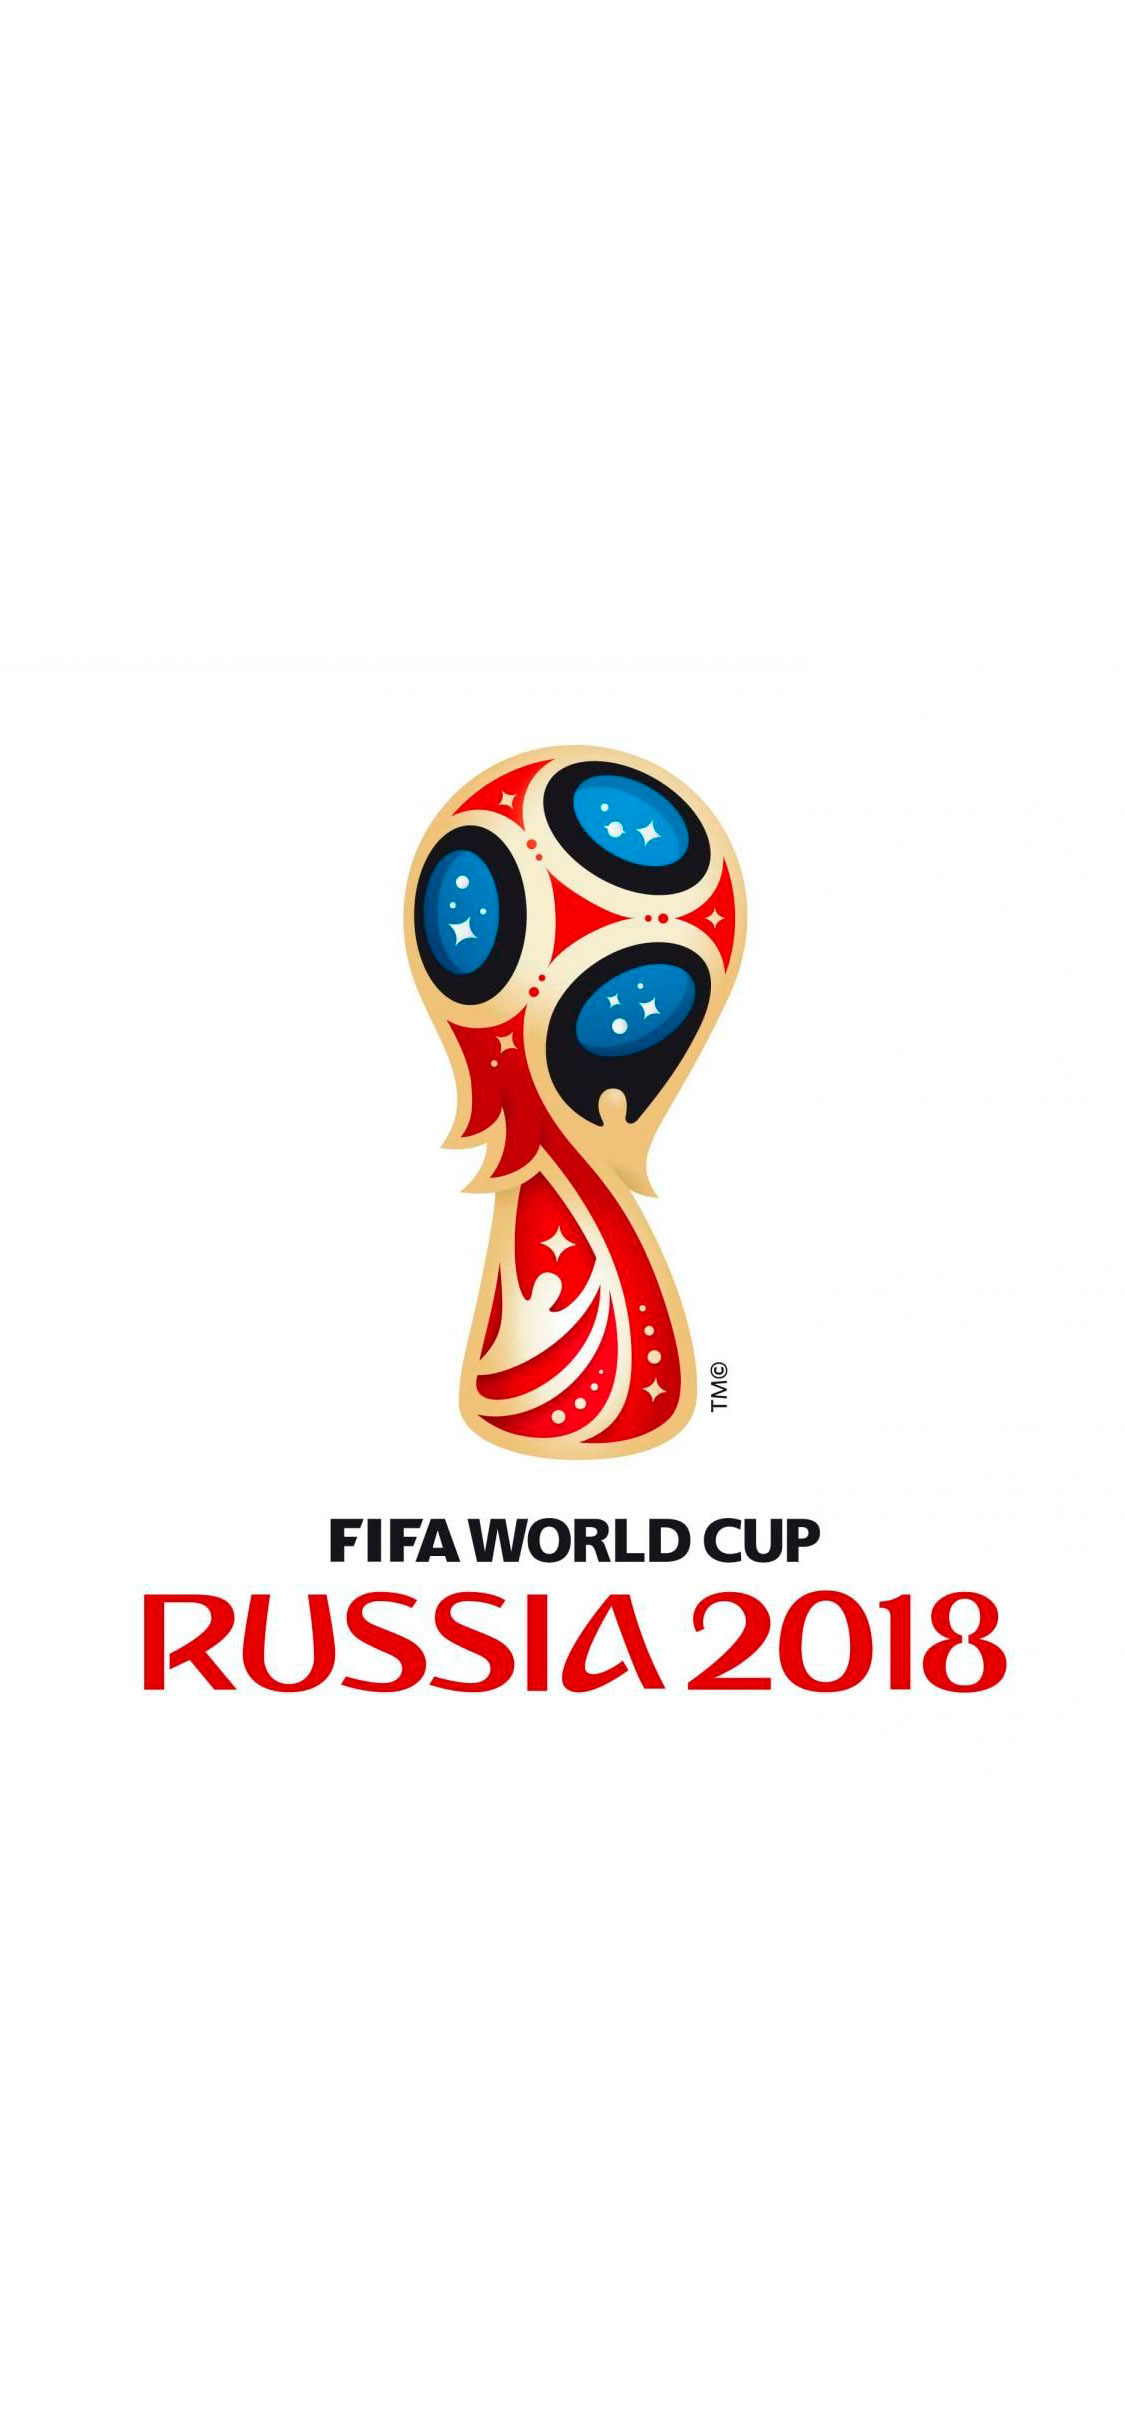 iPhone wallpaper world cup russia 2018 Fonds d'écran iPhone du 21/06/2018